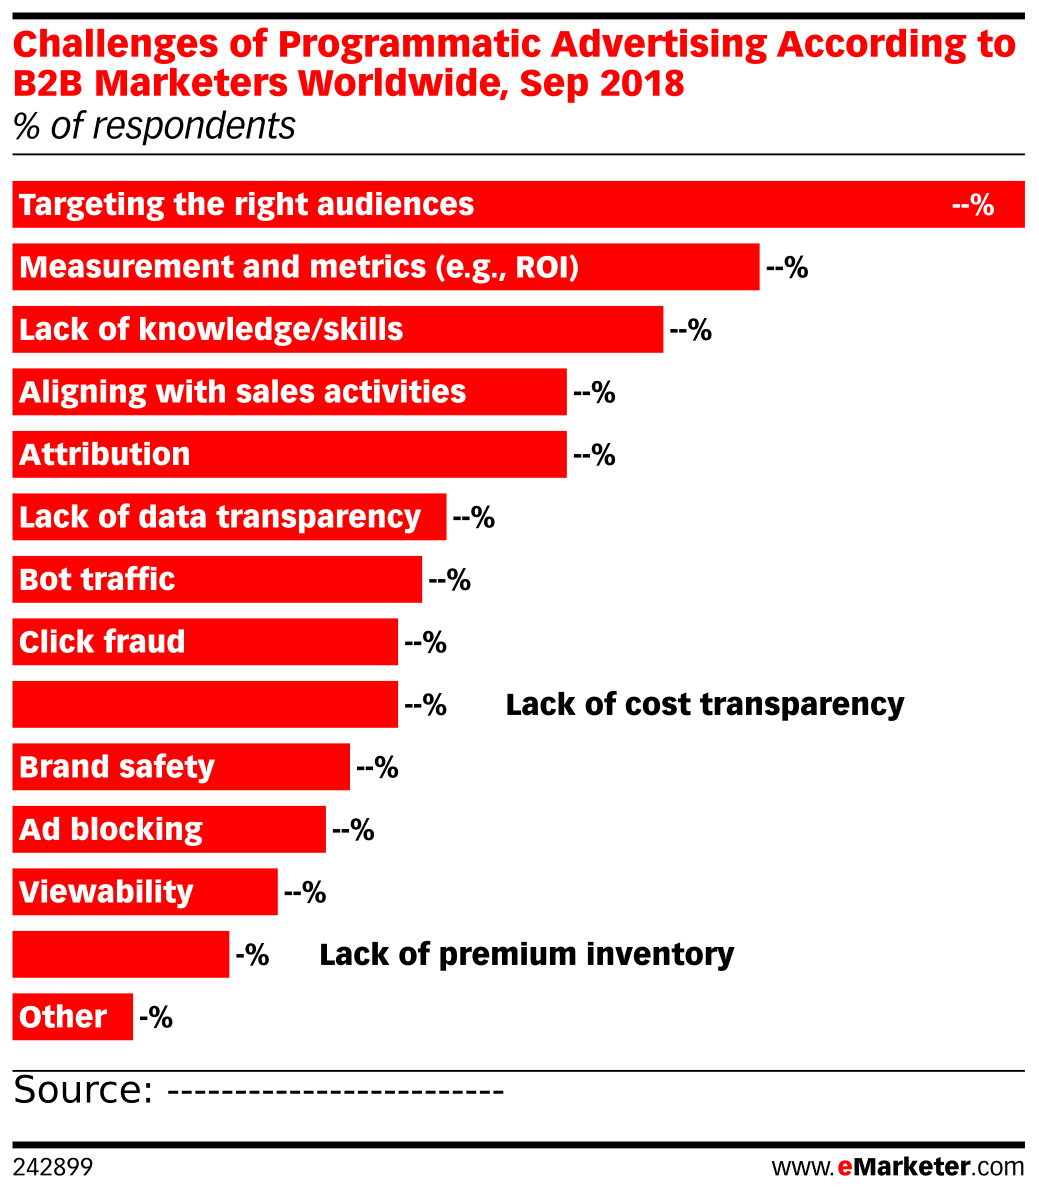 Challenges of Programmatic Advertising According to B2B Marketers Worldwide, Sep 2018 (% of respondents)